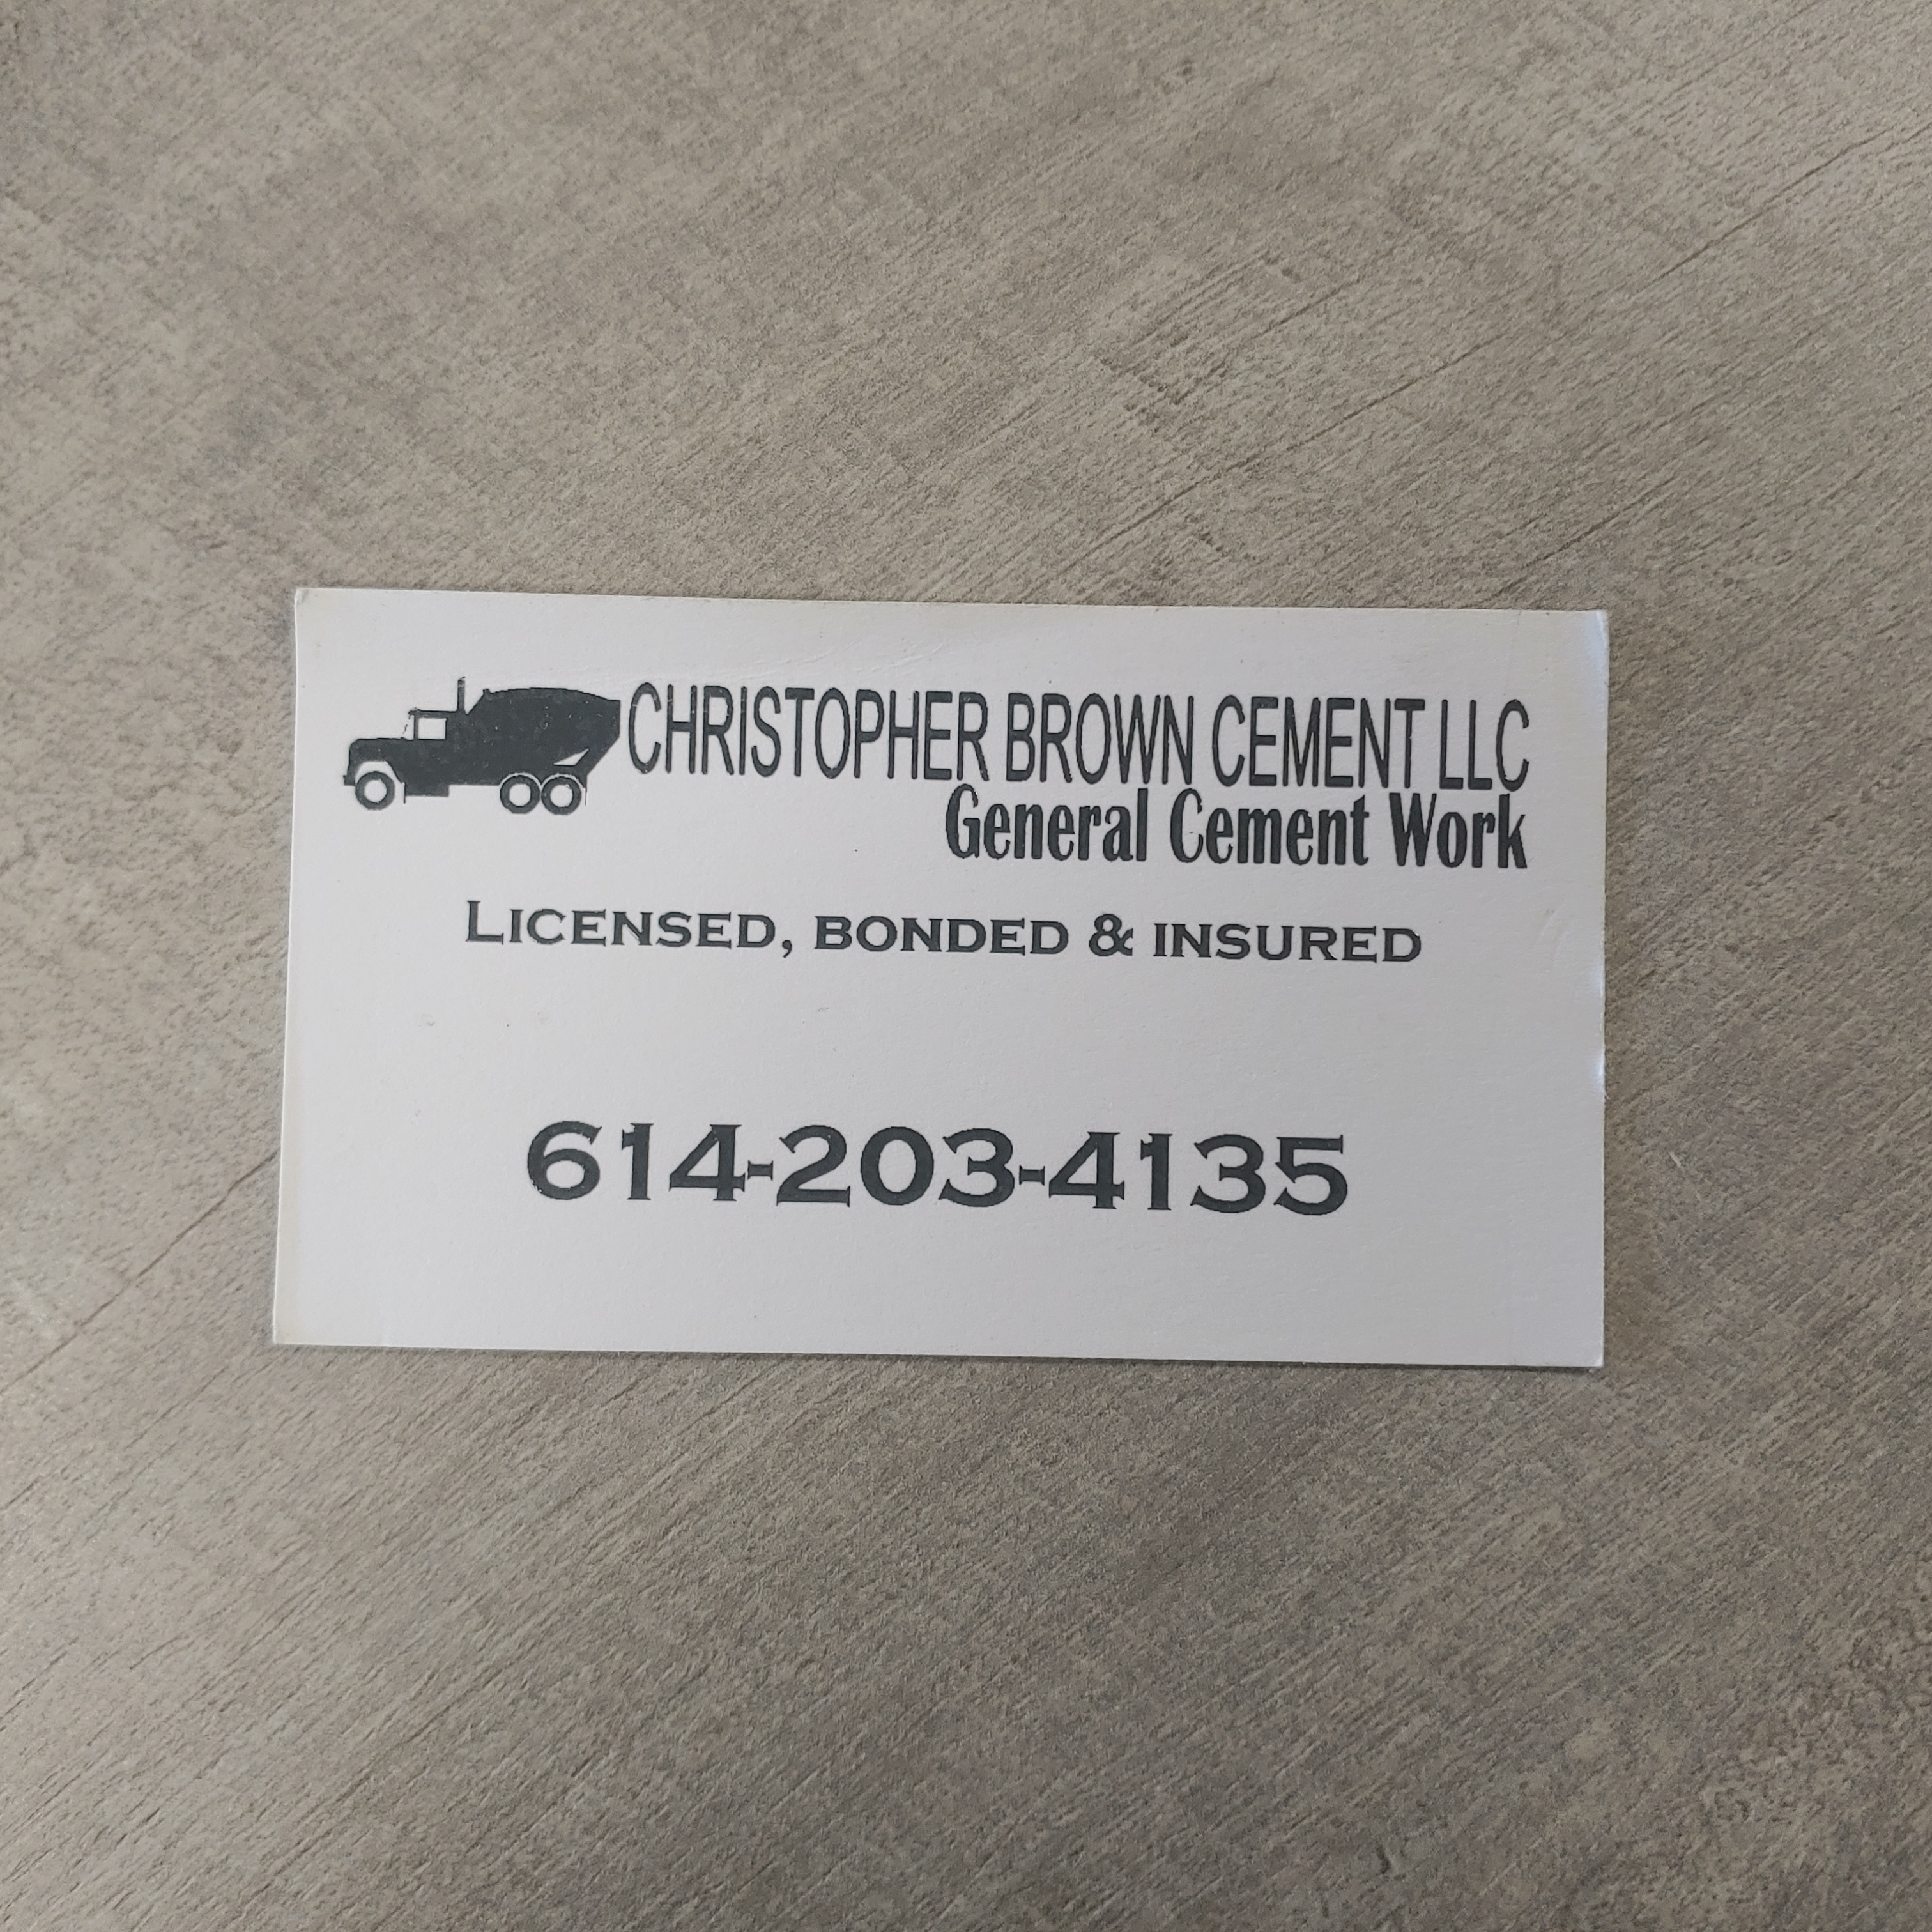 Christopher Brown Cement LLC